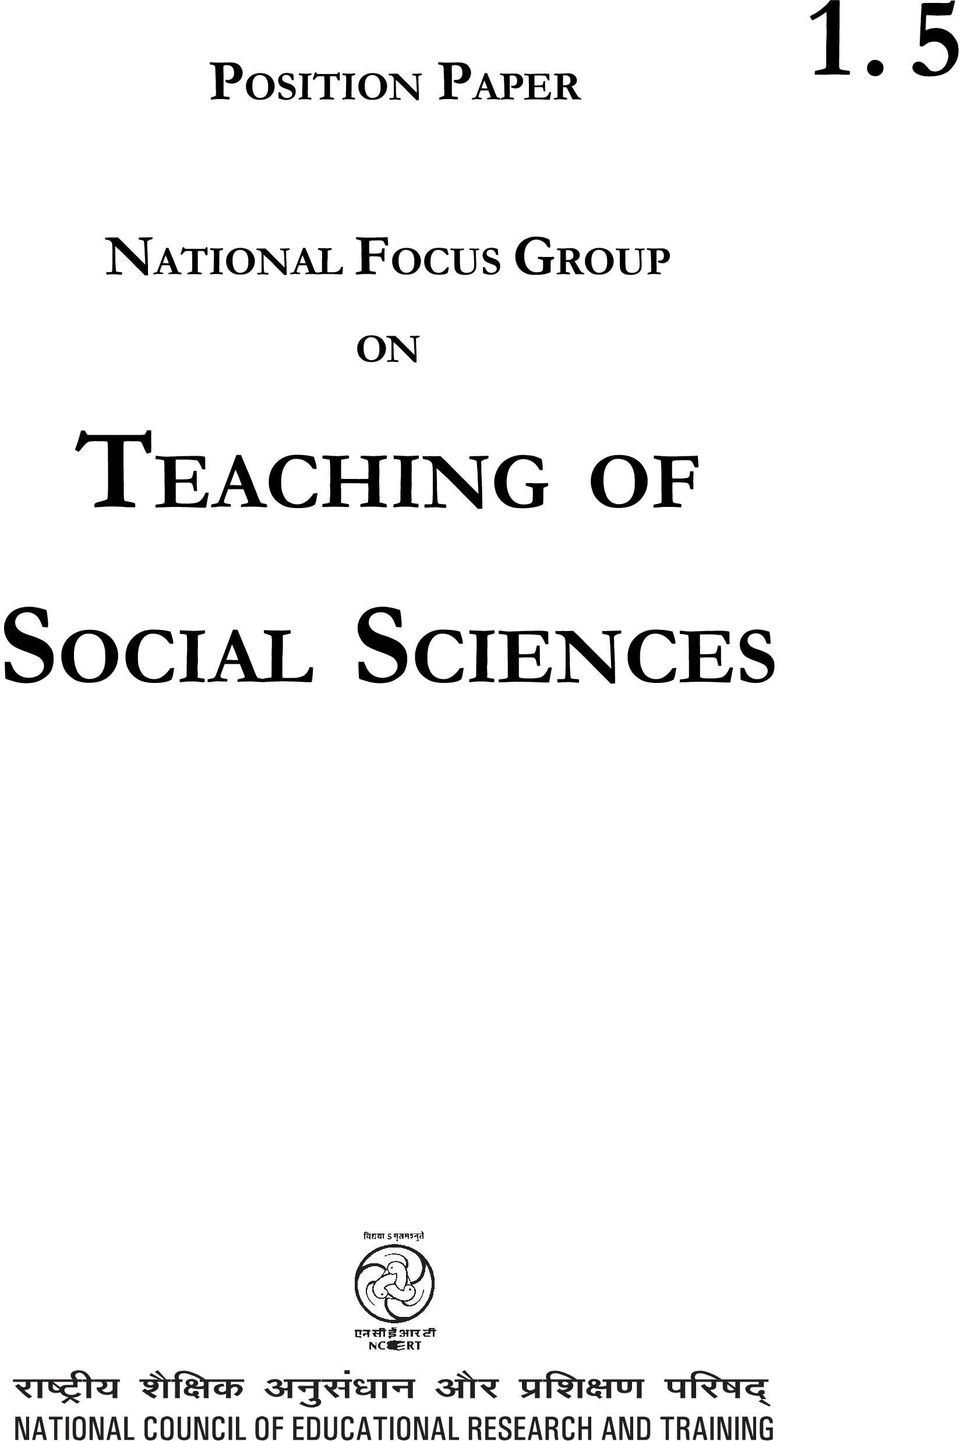 GROUP ON TEACHING